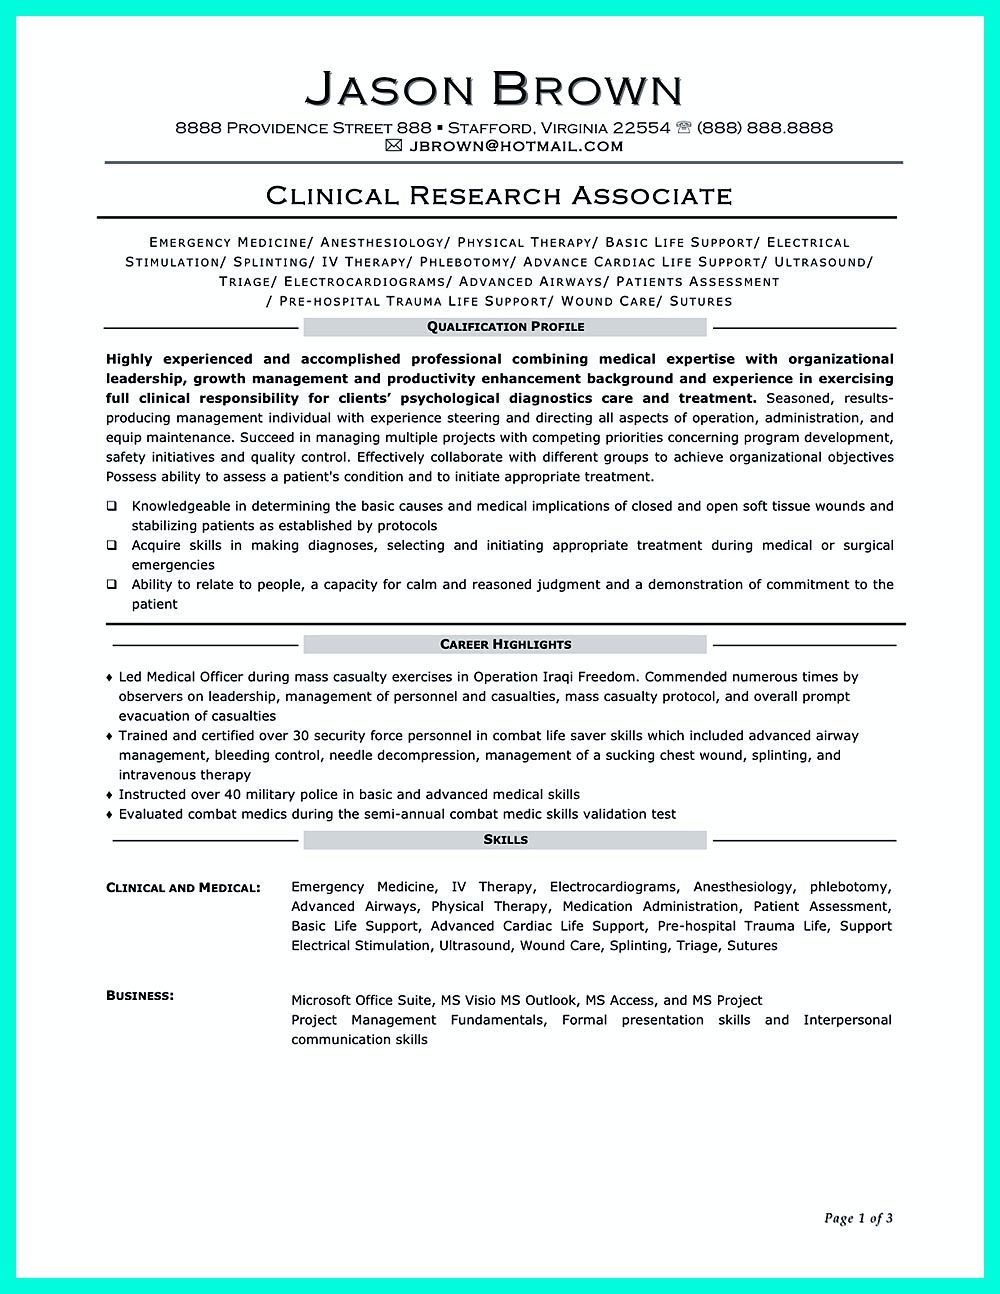 Making Clinical Research Associate Resume Is Sometimes Not Easy